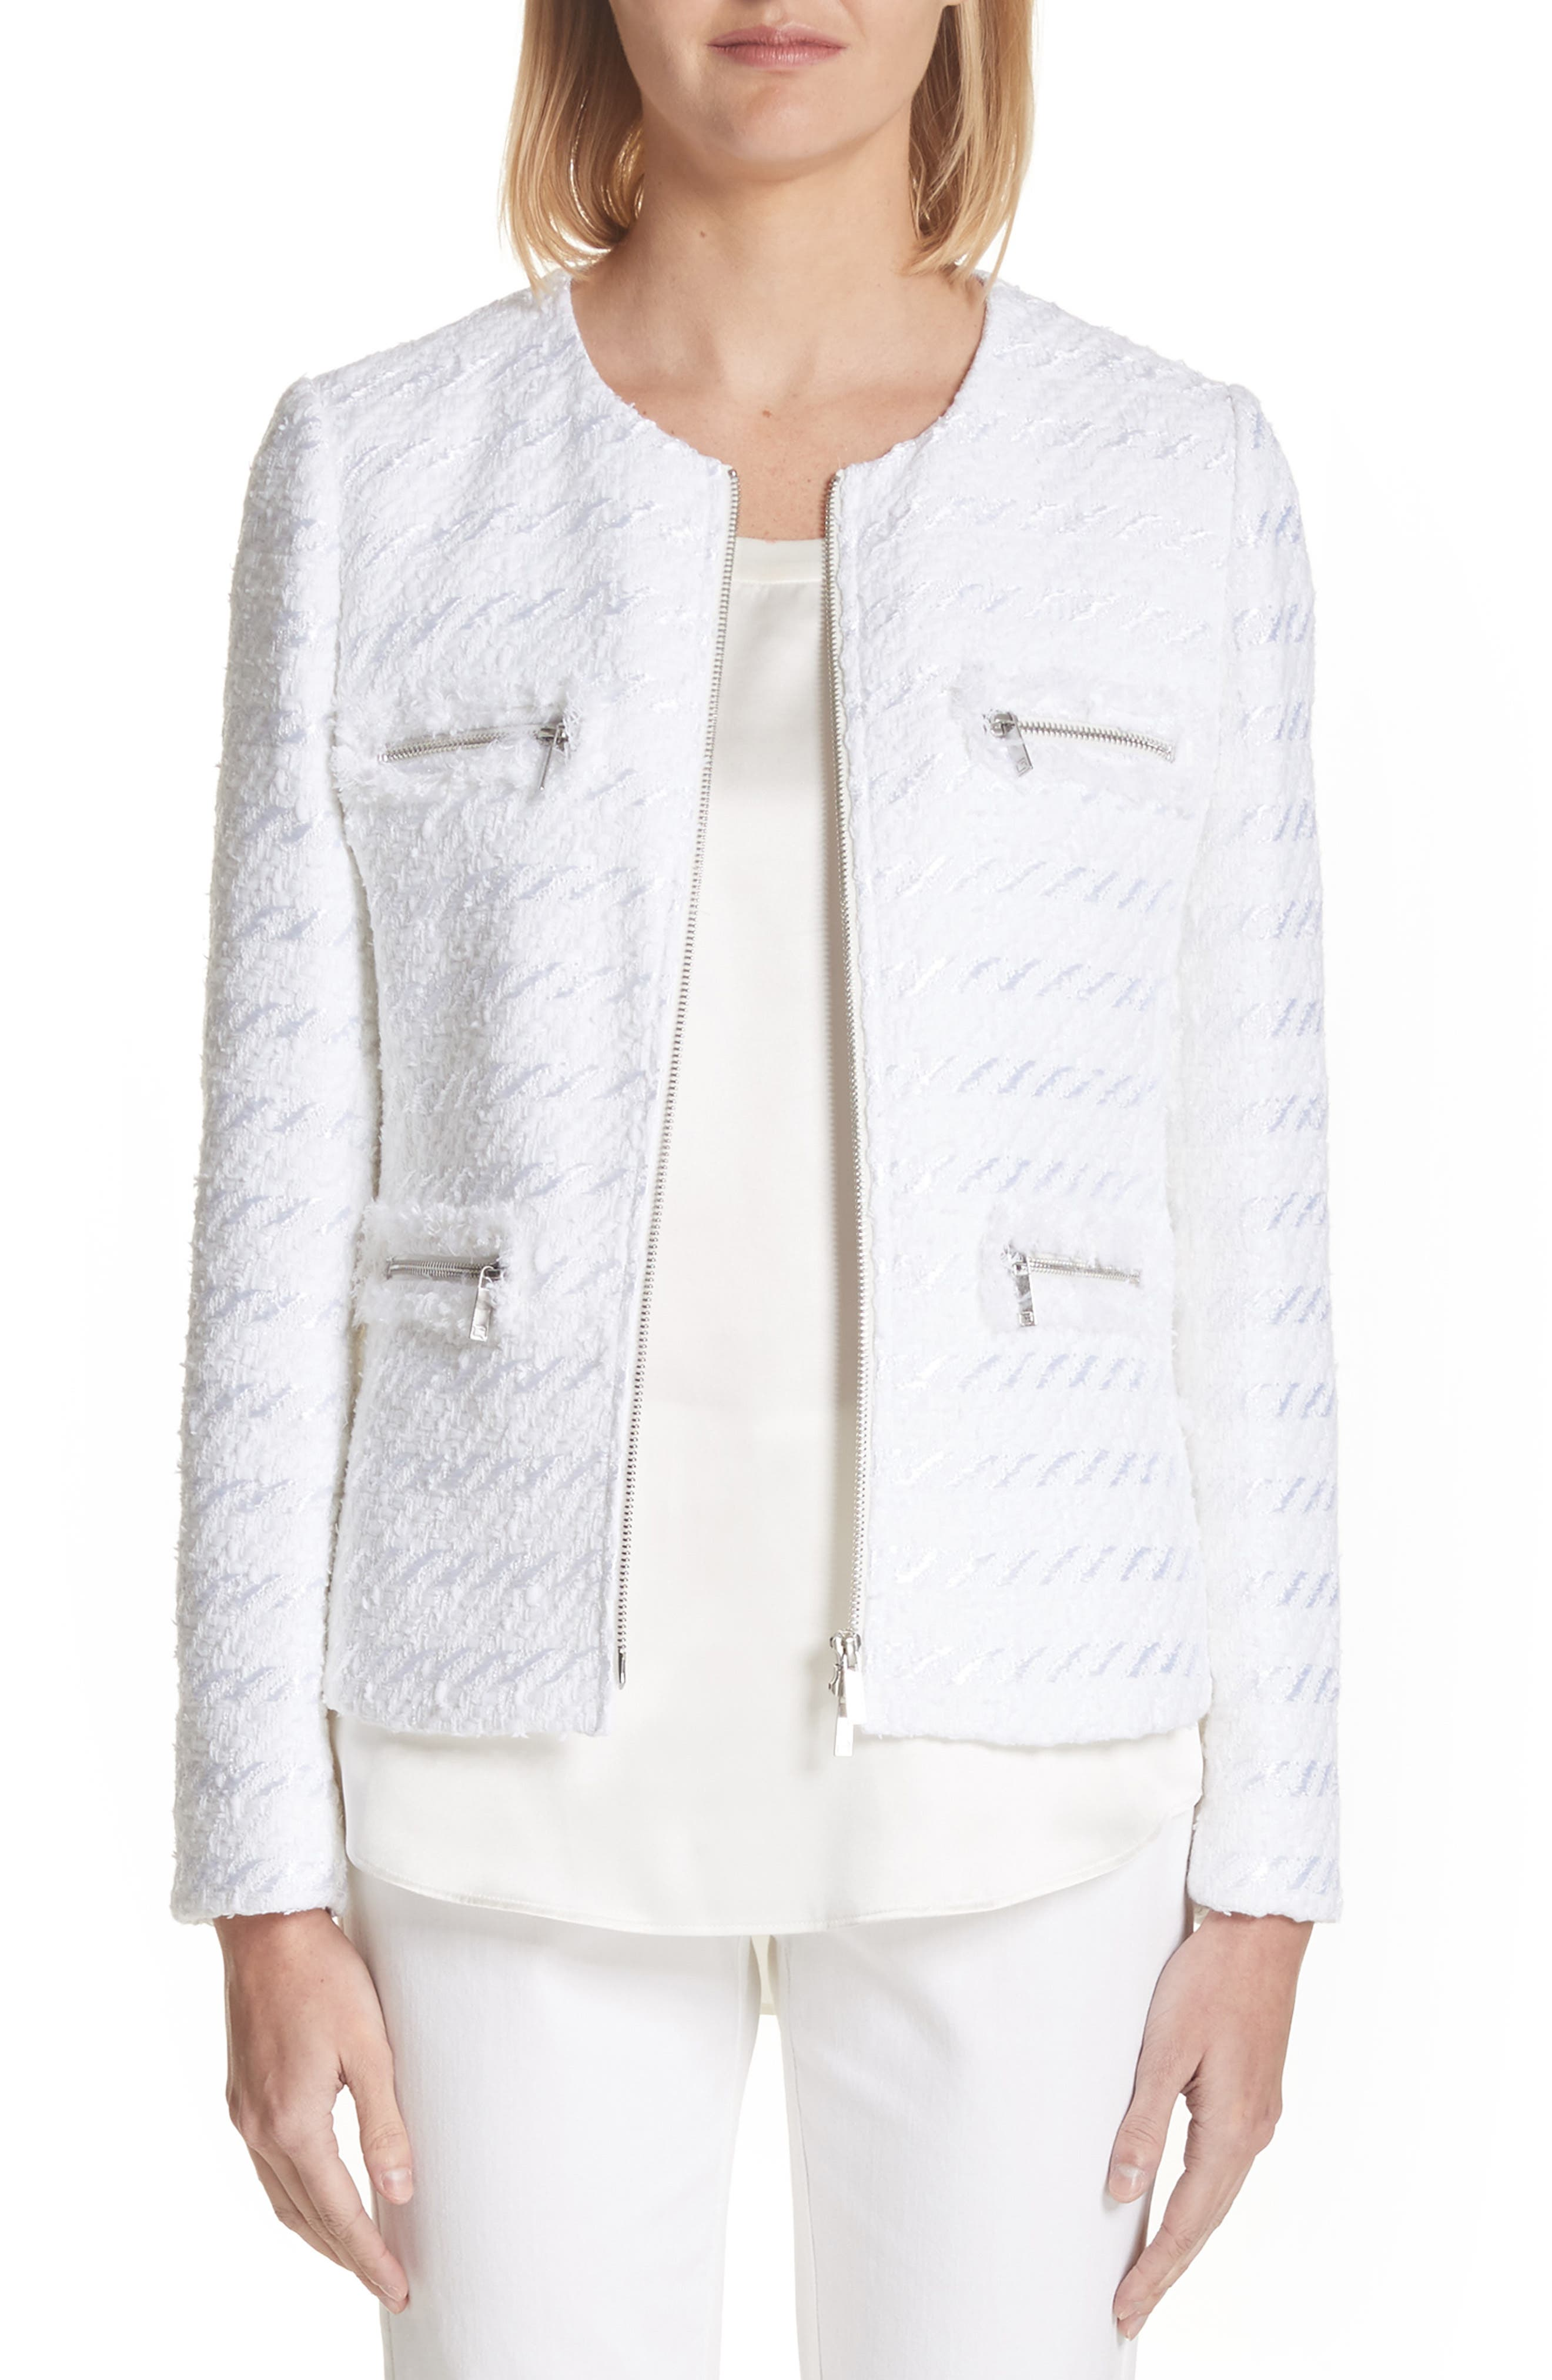 Emelyn Jacquard Jacket,                         Main,                         color, 100